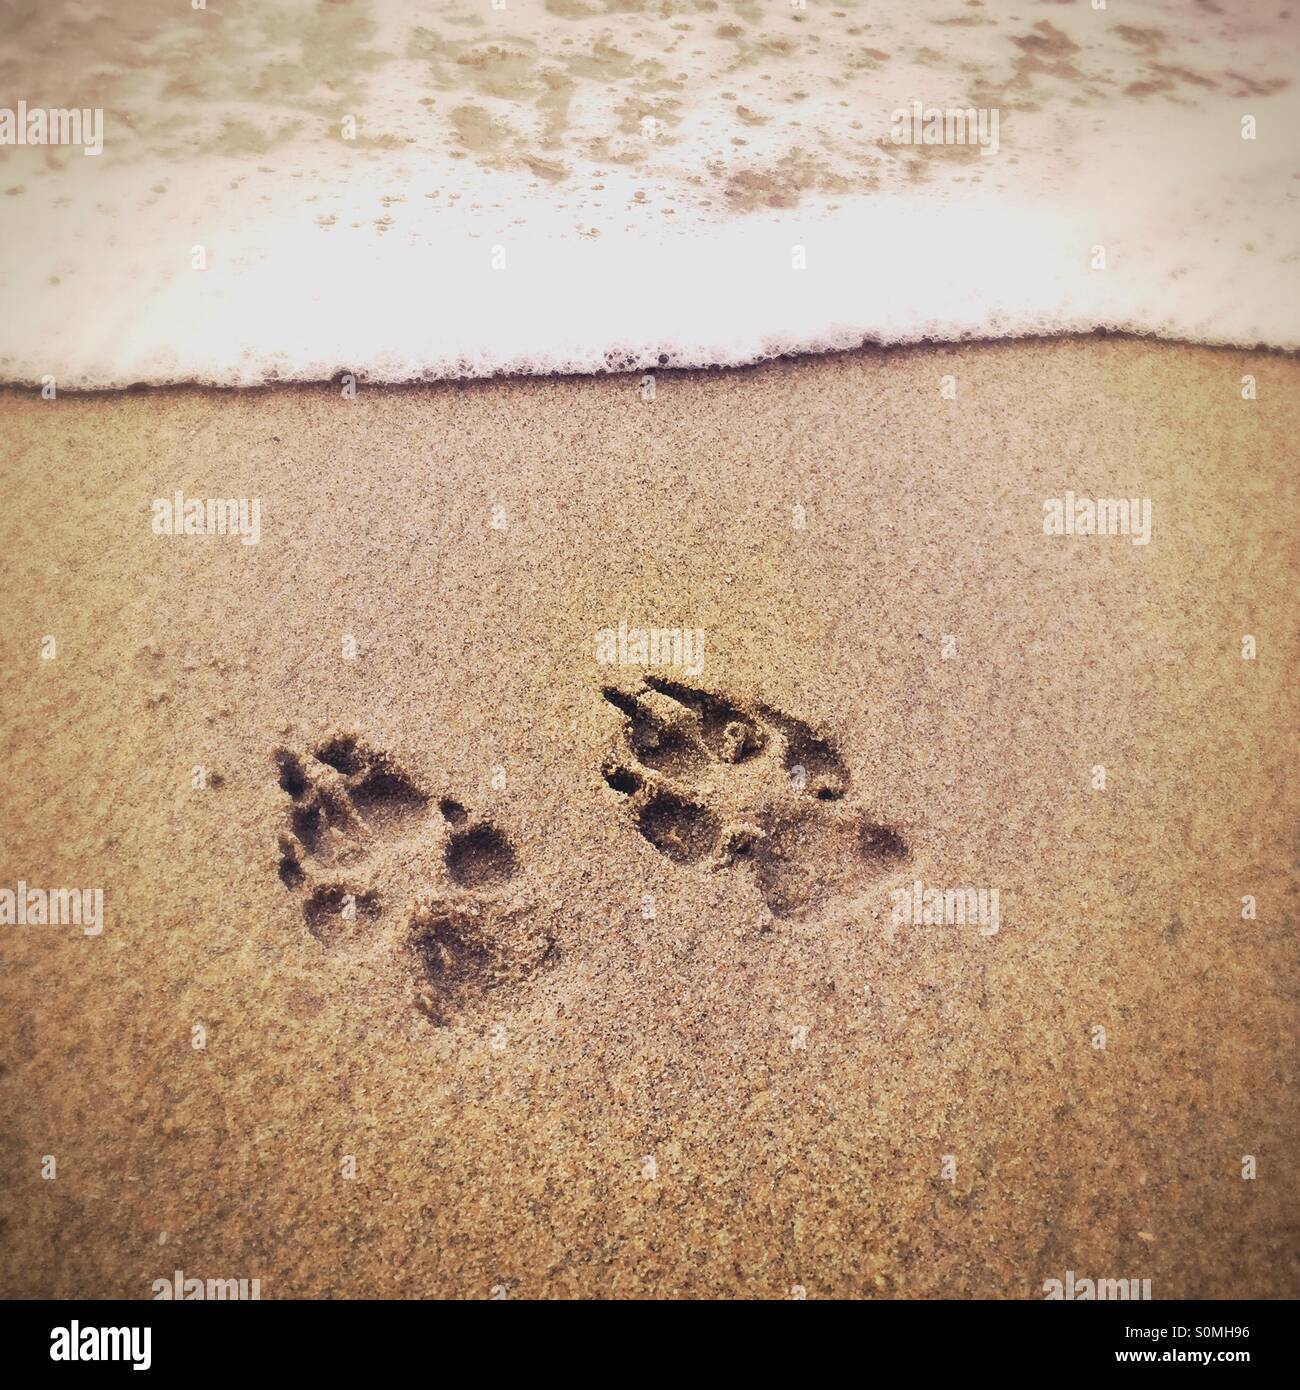 96bdf8fb1 Dog paw prints in the sand at the beach Stock Photo  310239250 - Alamy